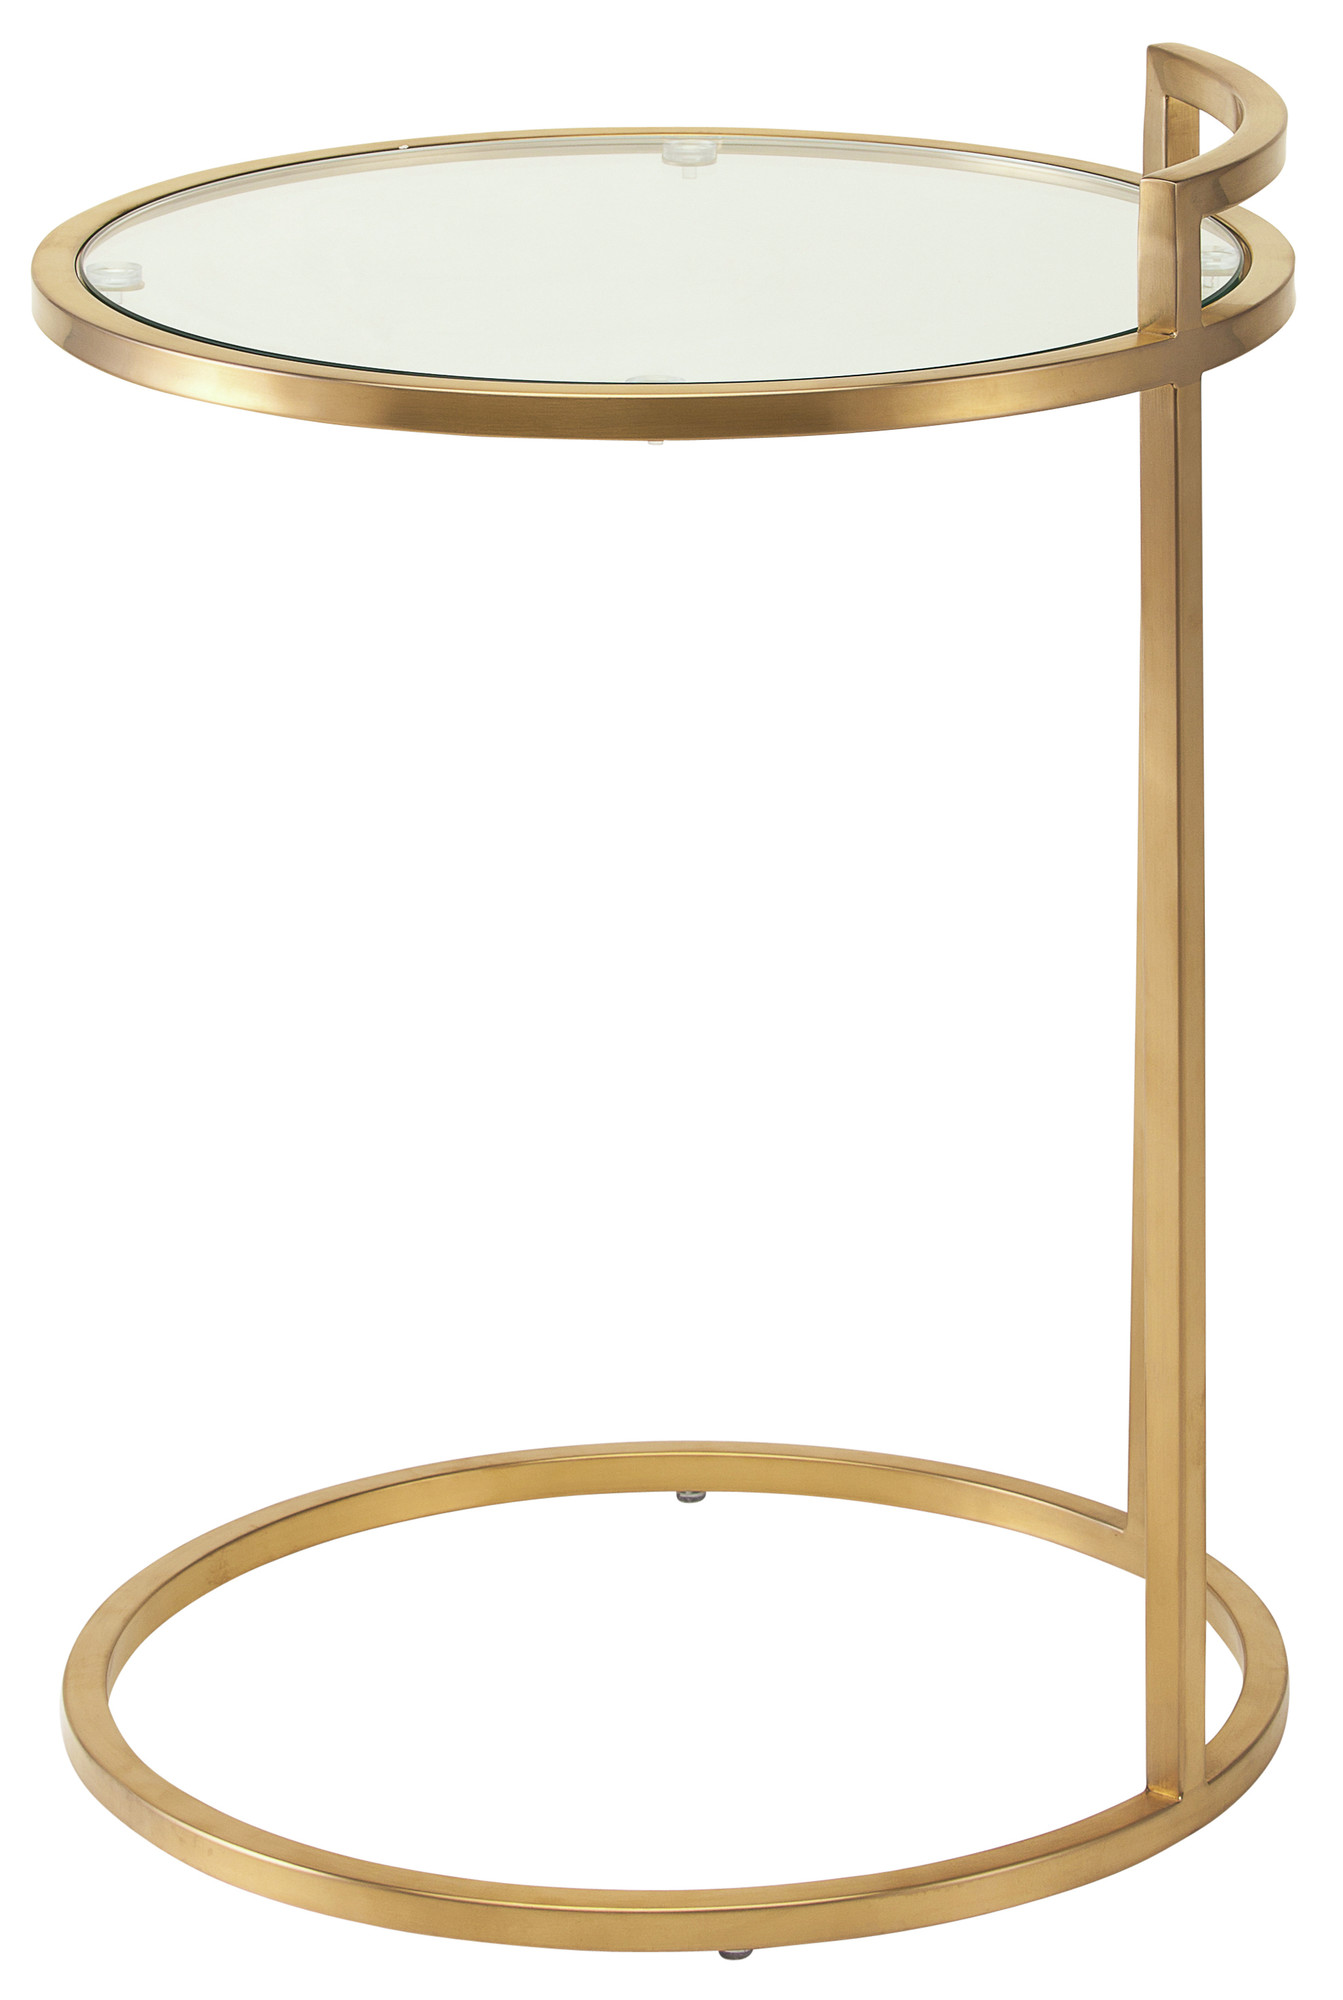 lily-gold-side-table.jpg